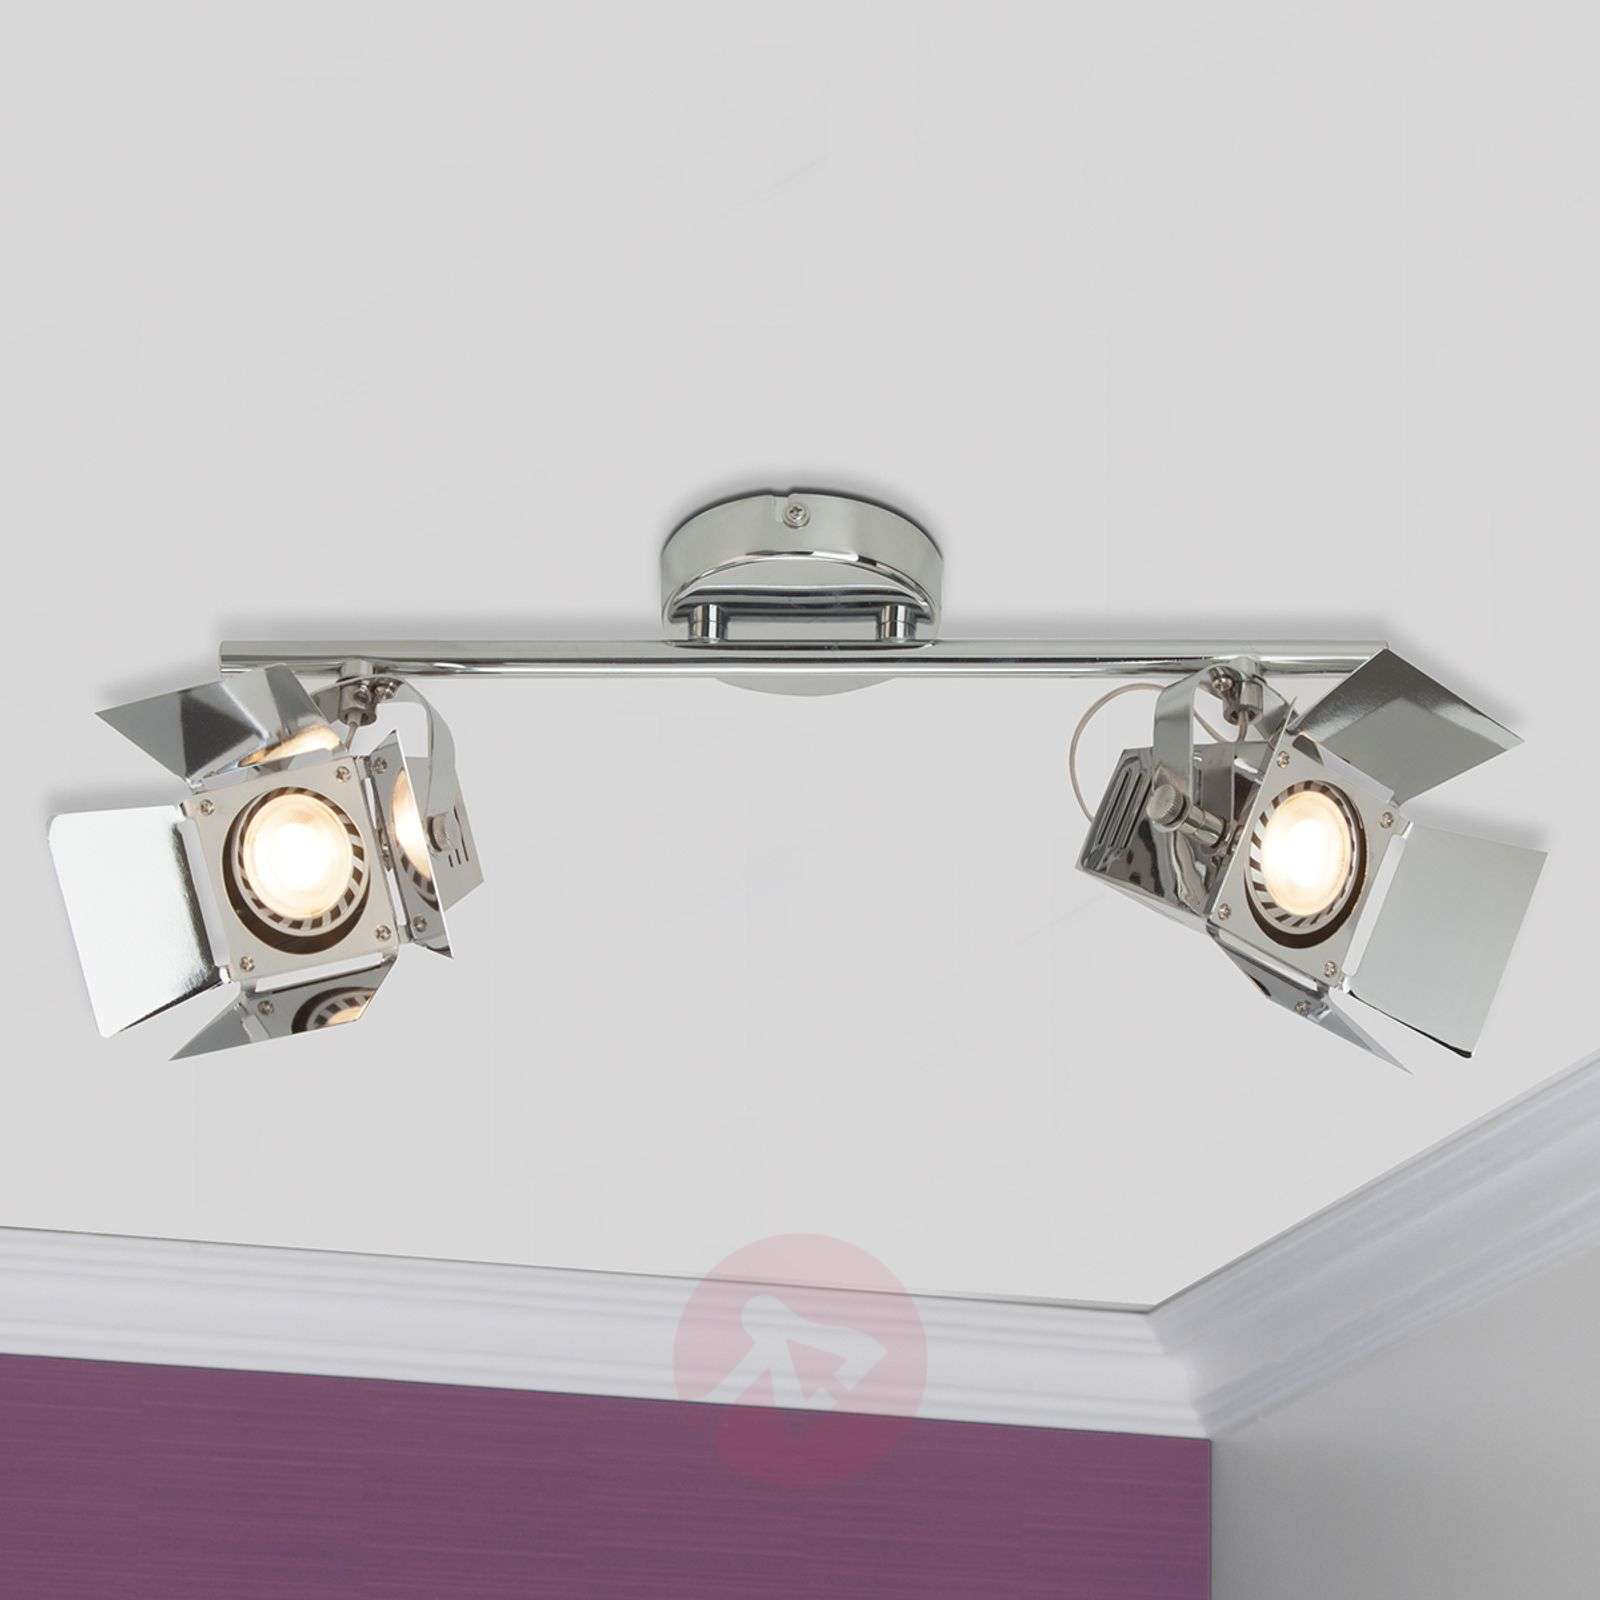 plafonnier spot led a 2 lampes movie chrome 1509129 31 5 Bon Marché Luminaire Plafonnier Spot Hht5